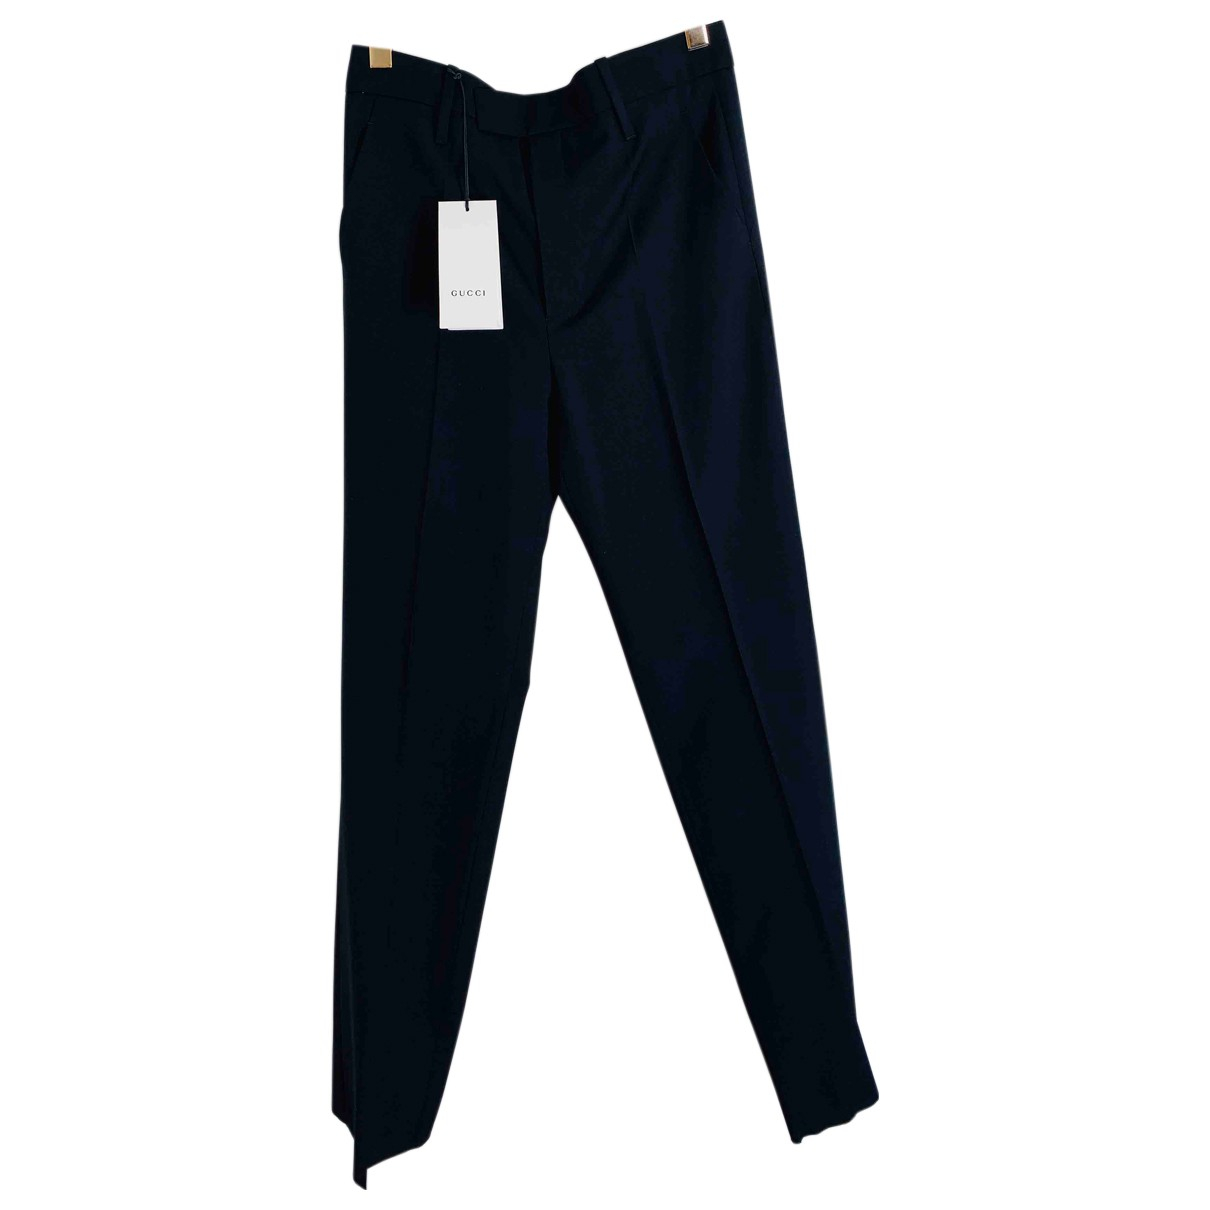 Gucci N Black Wool Trousers for Women 38 IT